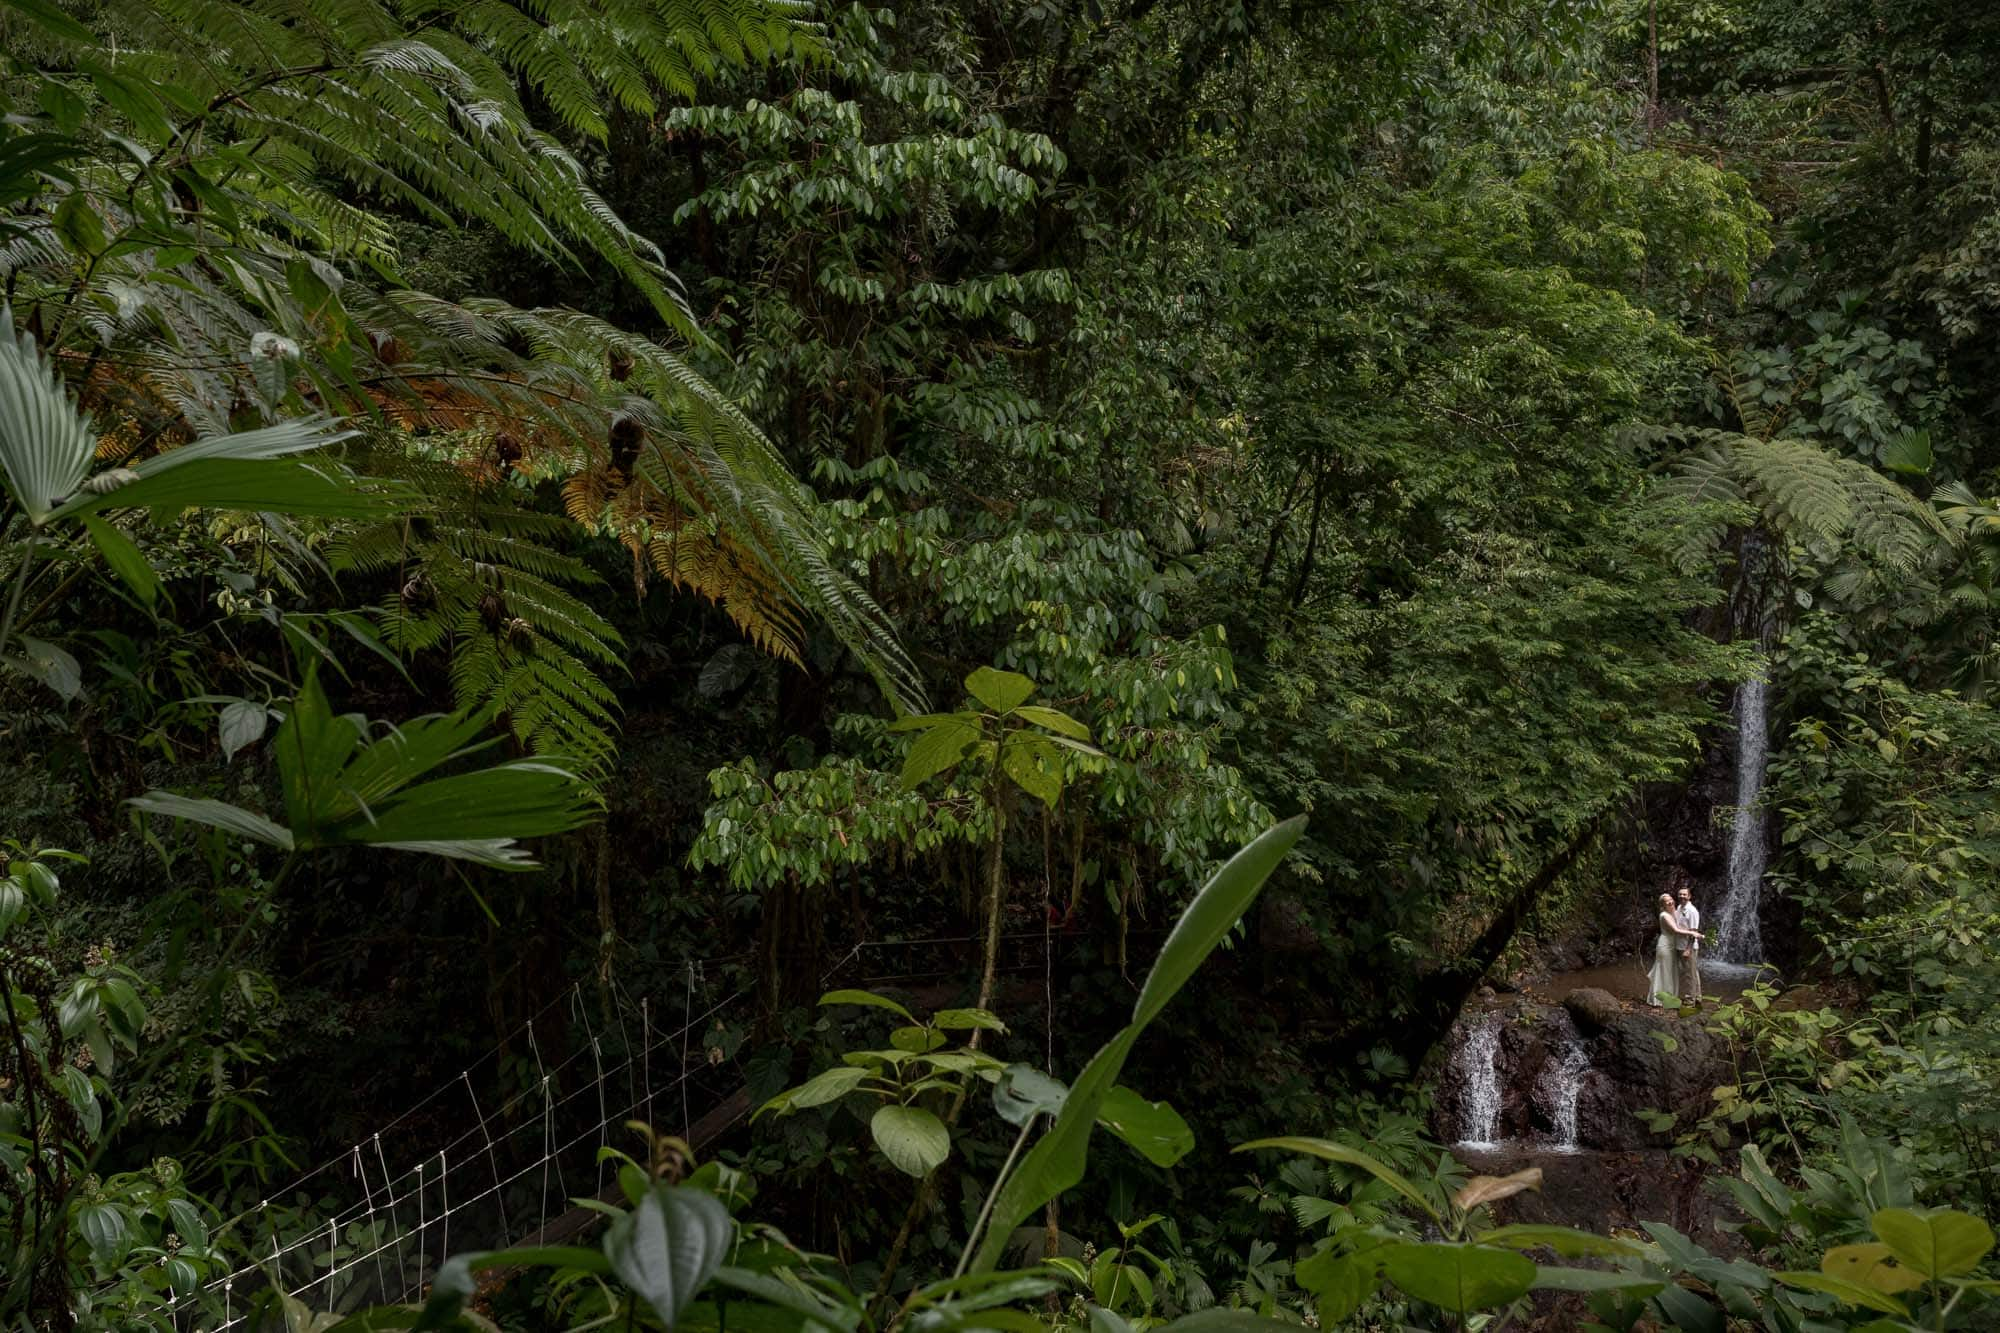 Bride and groom at base of waterfall in costa rican rainforest